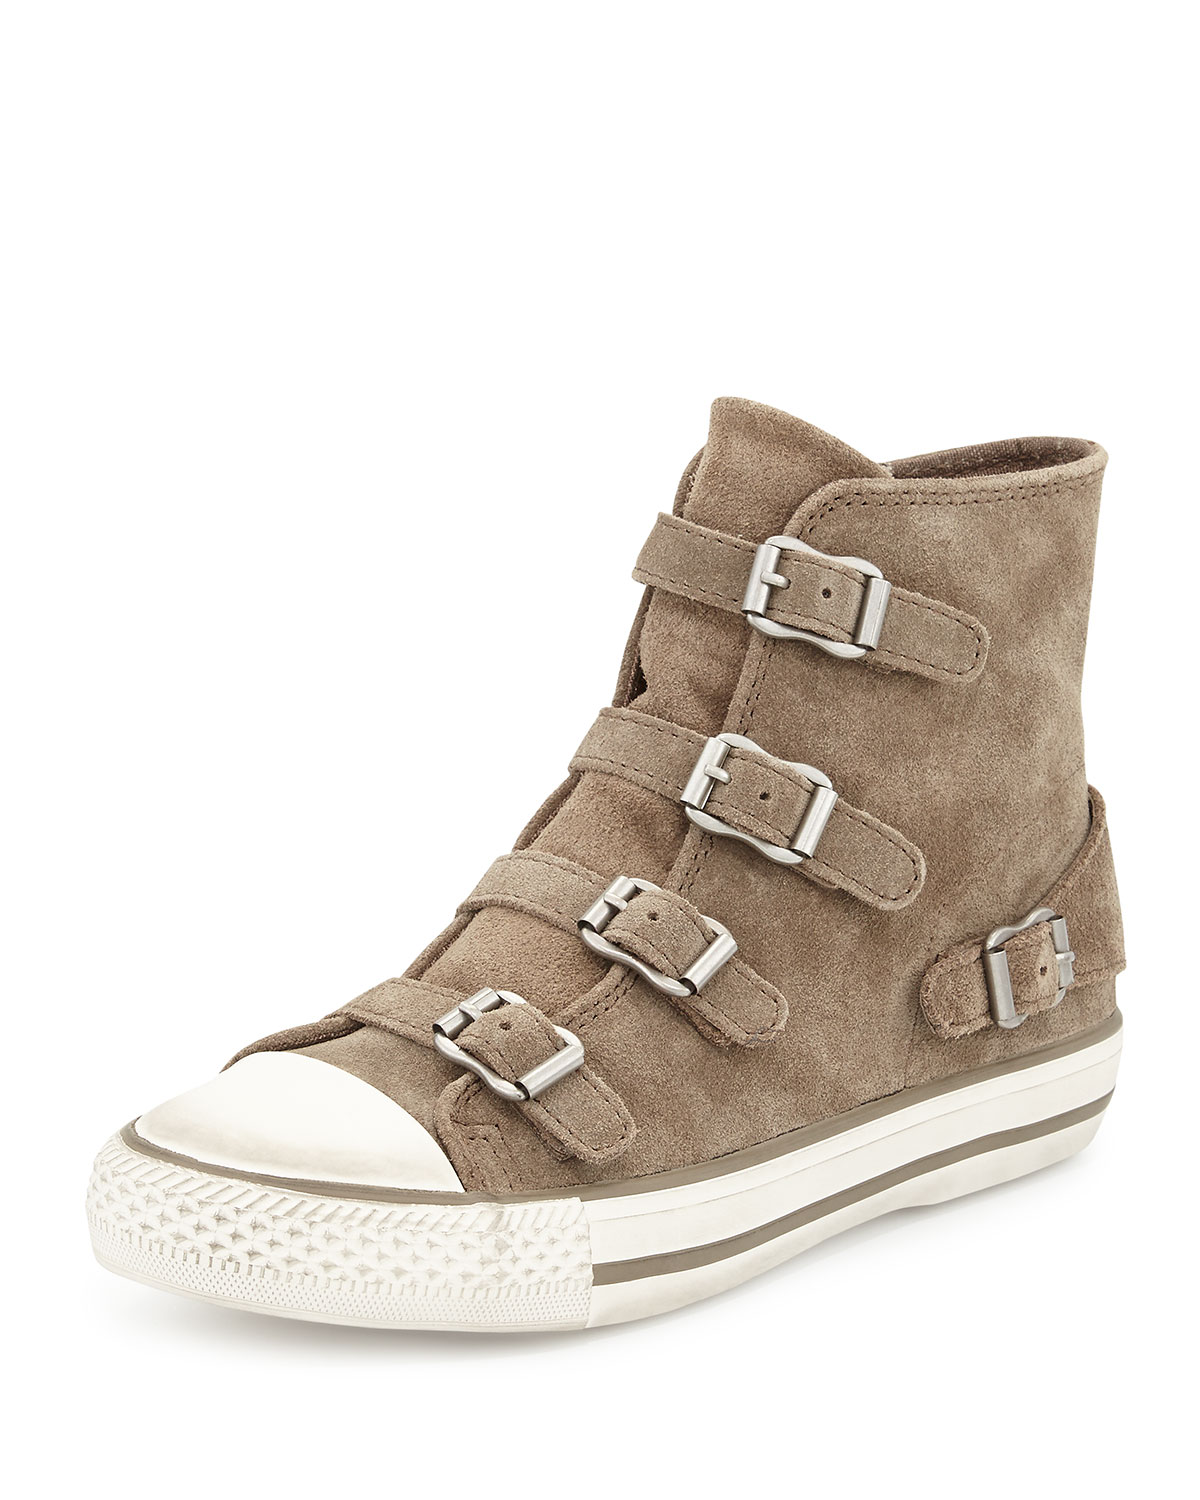 Ash Virgin Suede Buckled Sneakers, Taupe, 10